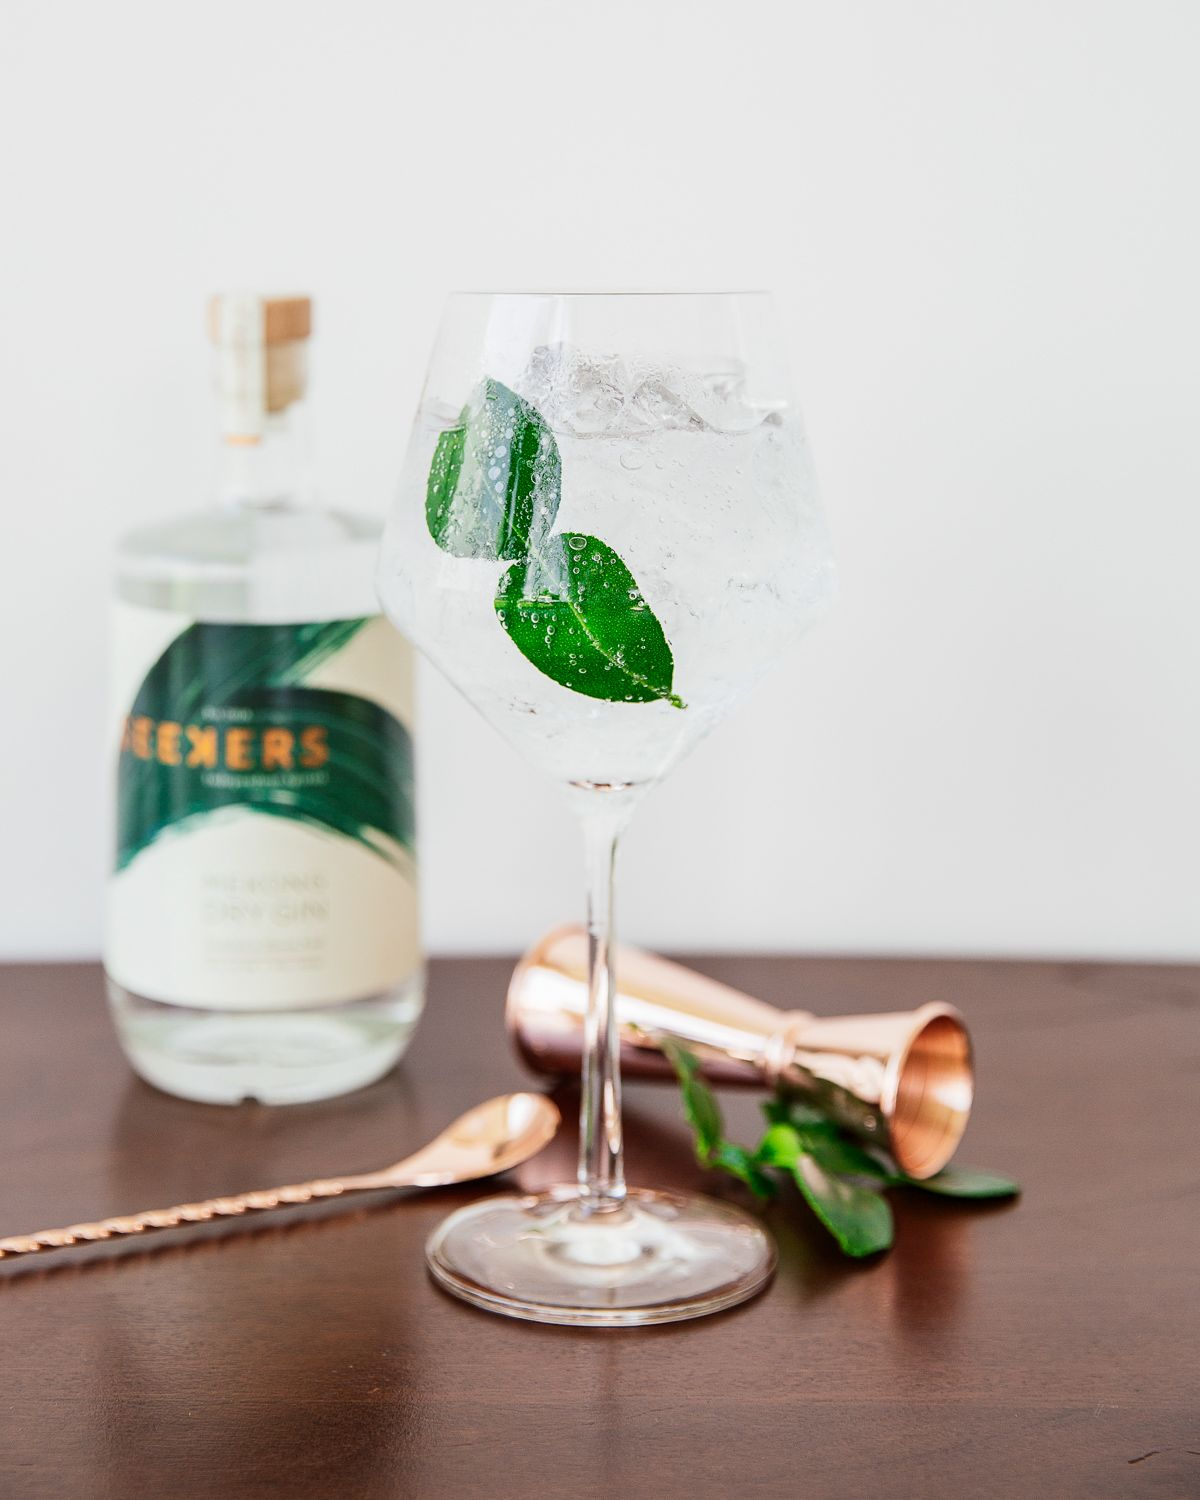 Seekers & Tonic - The ultimate sundowner. Refreshing and aromatic. 50ml Seekers Mekong Dry Gin150ml Tonic WaterServe in a large copa glass. Pack full of ice. Garnish with a Kaffir Lime Leaf.